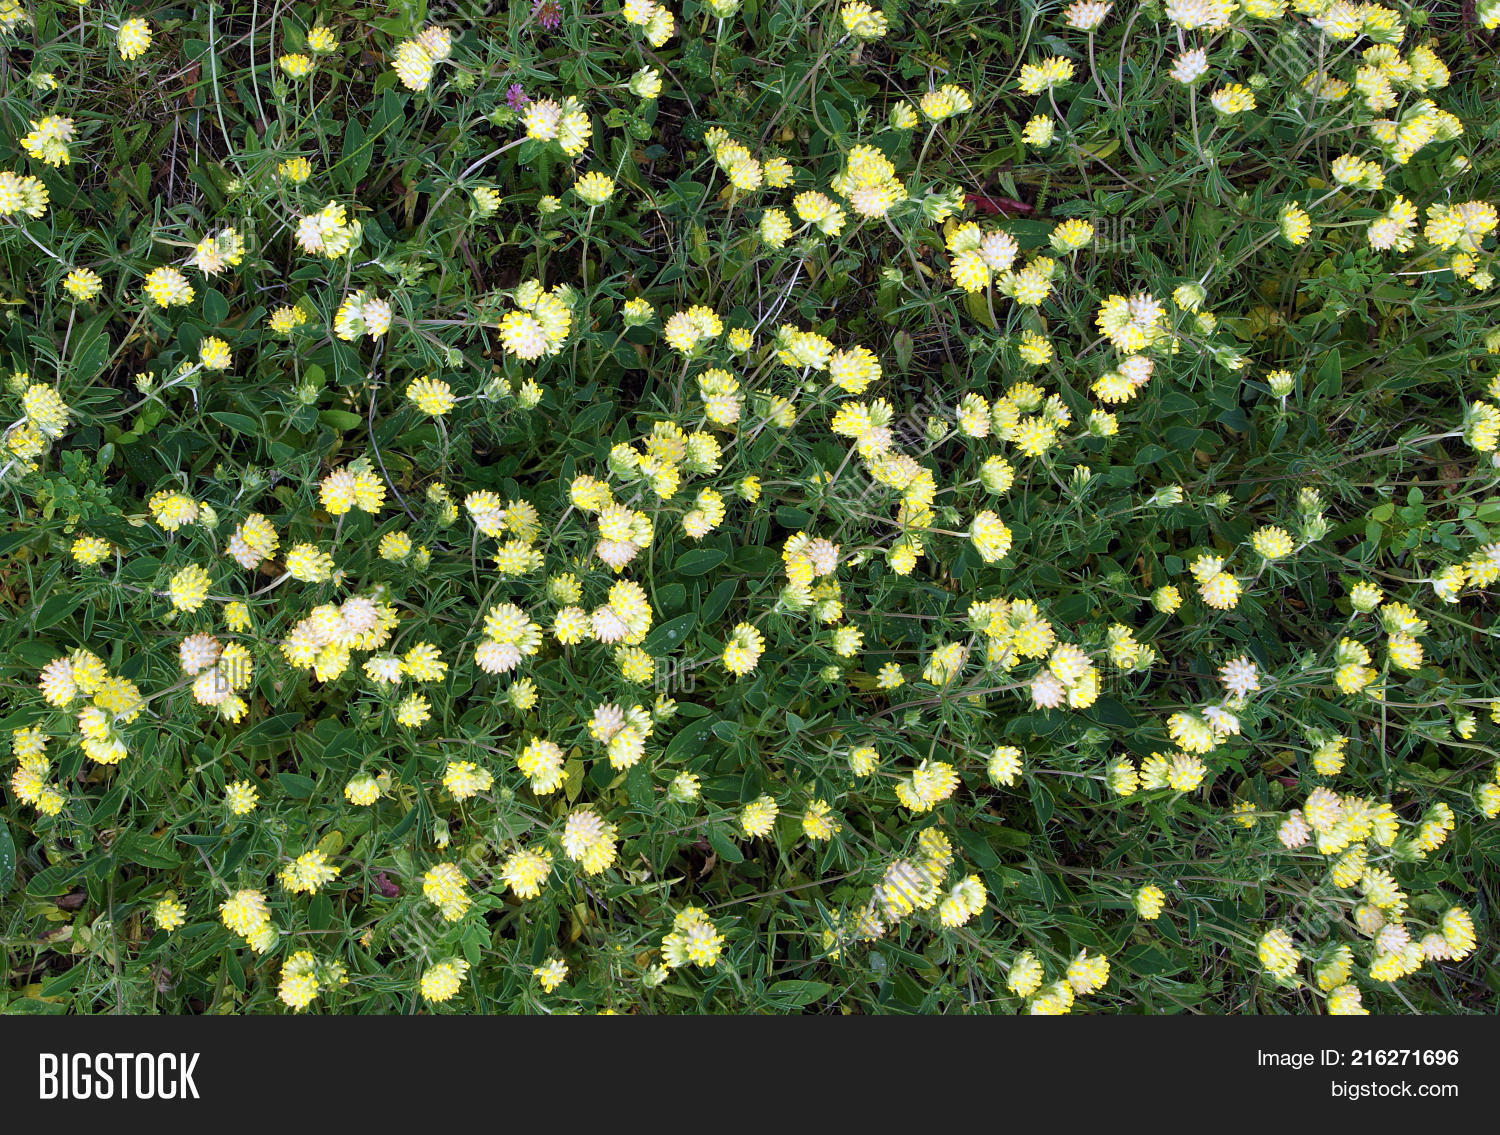 Trifolium Cyathiferum Image Photo Free Trial Bigstock